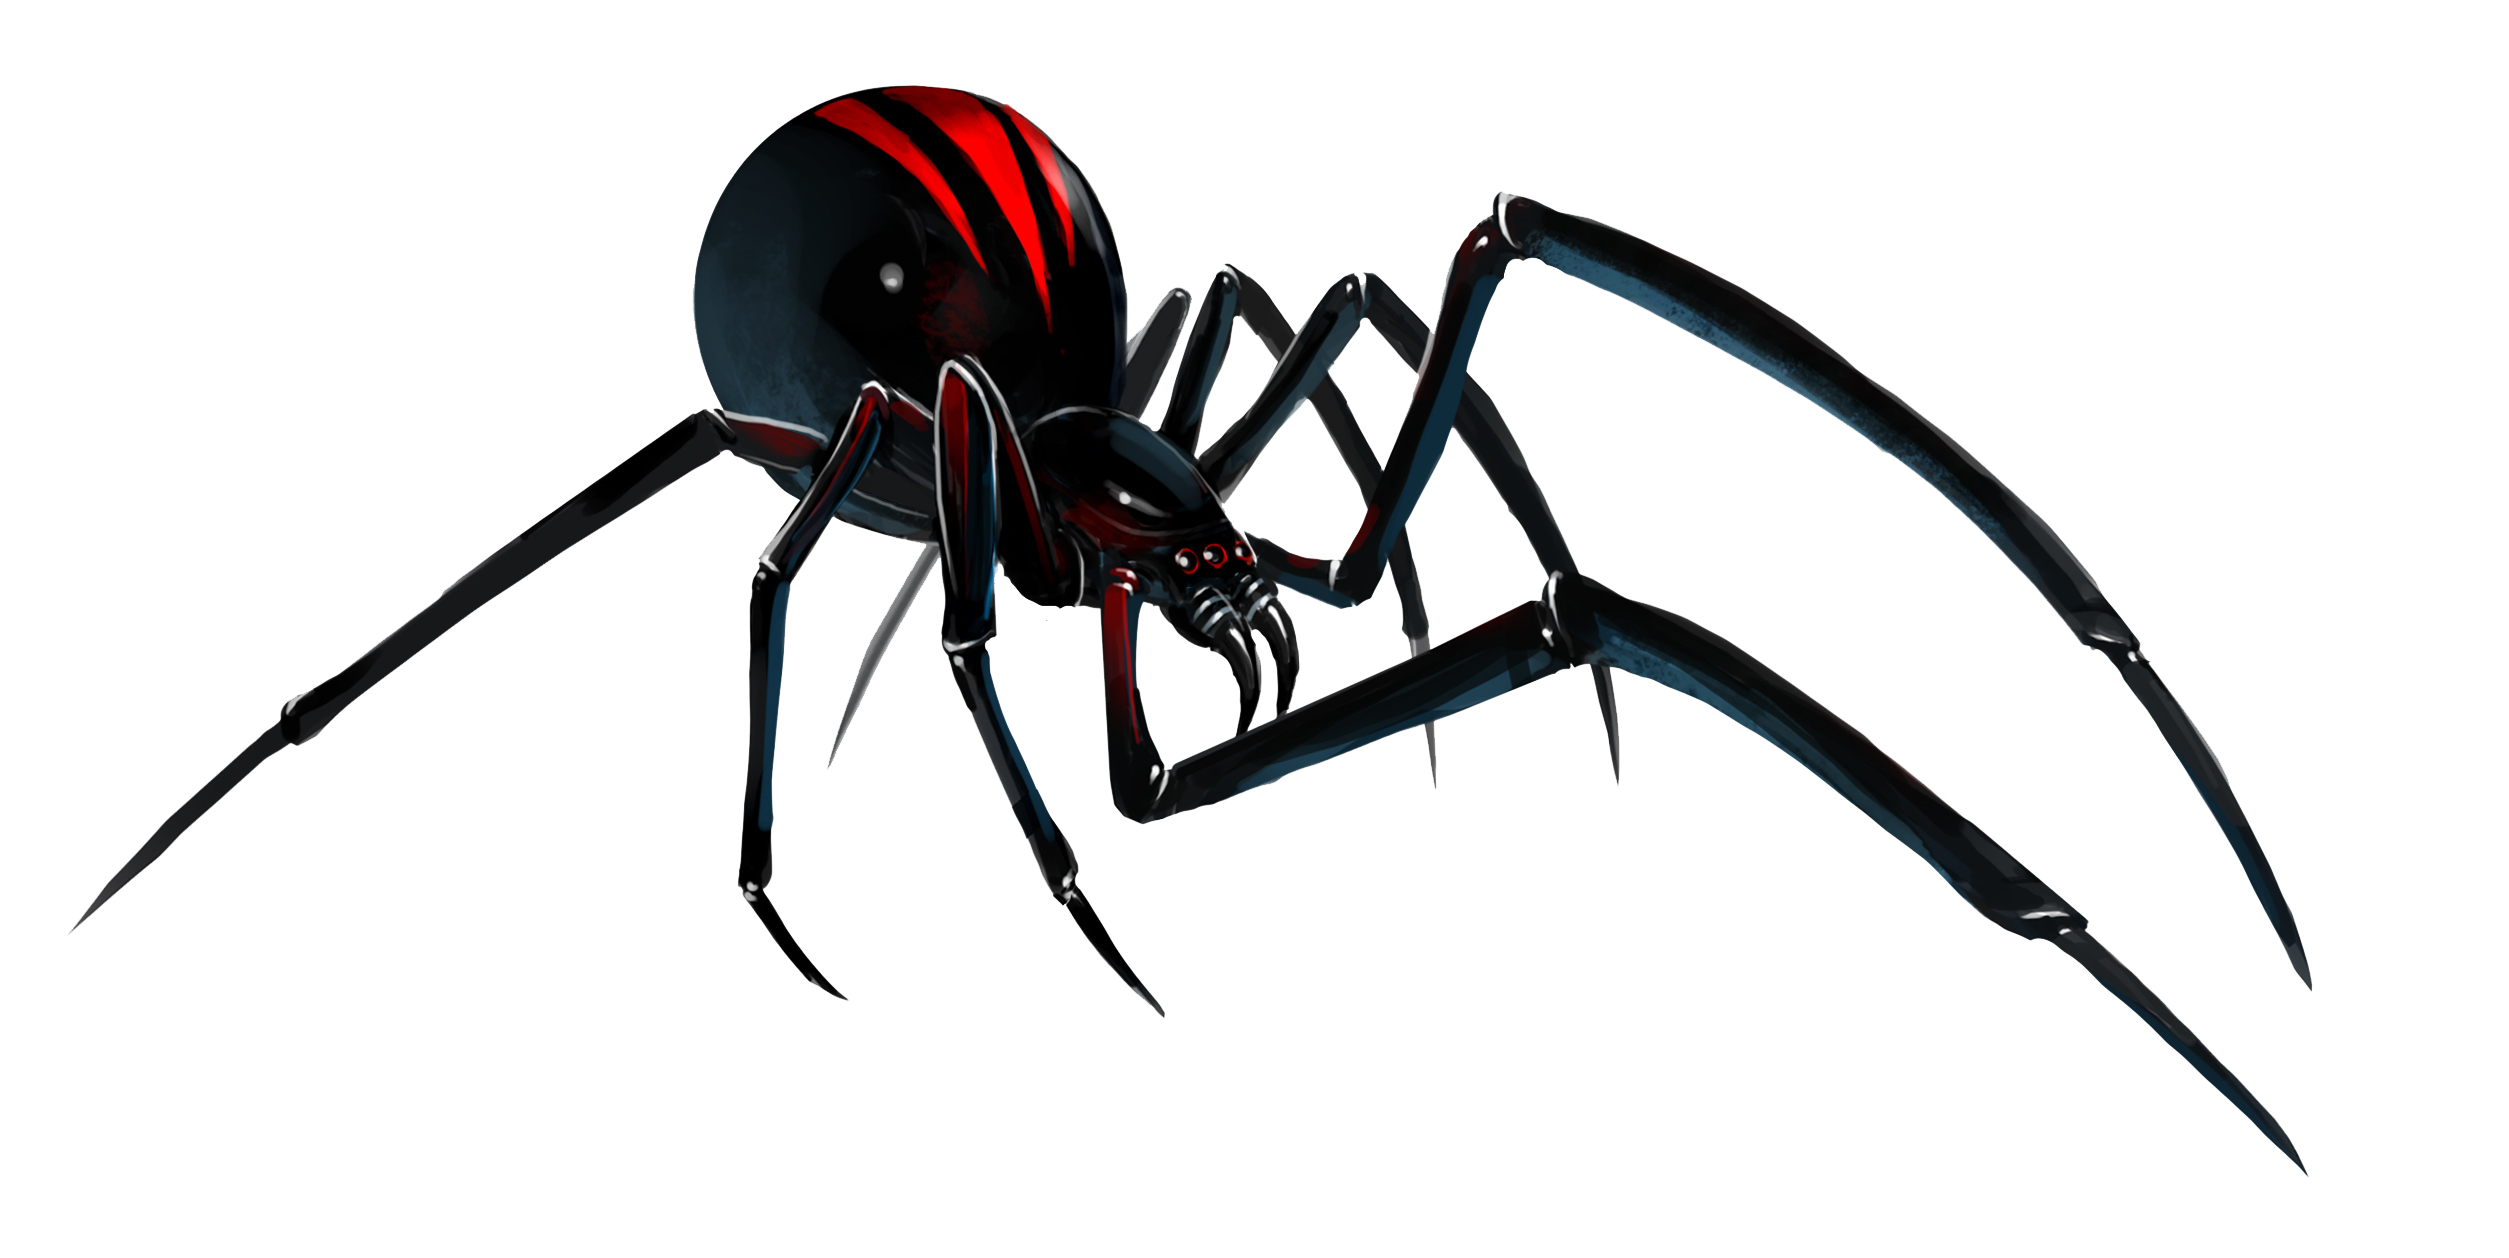 Black widows clipart picture library library Black Widow Spider Clipart | Free download best Black Widow Spider ... picture library library